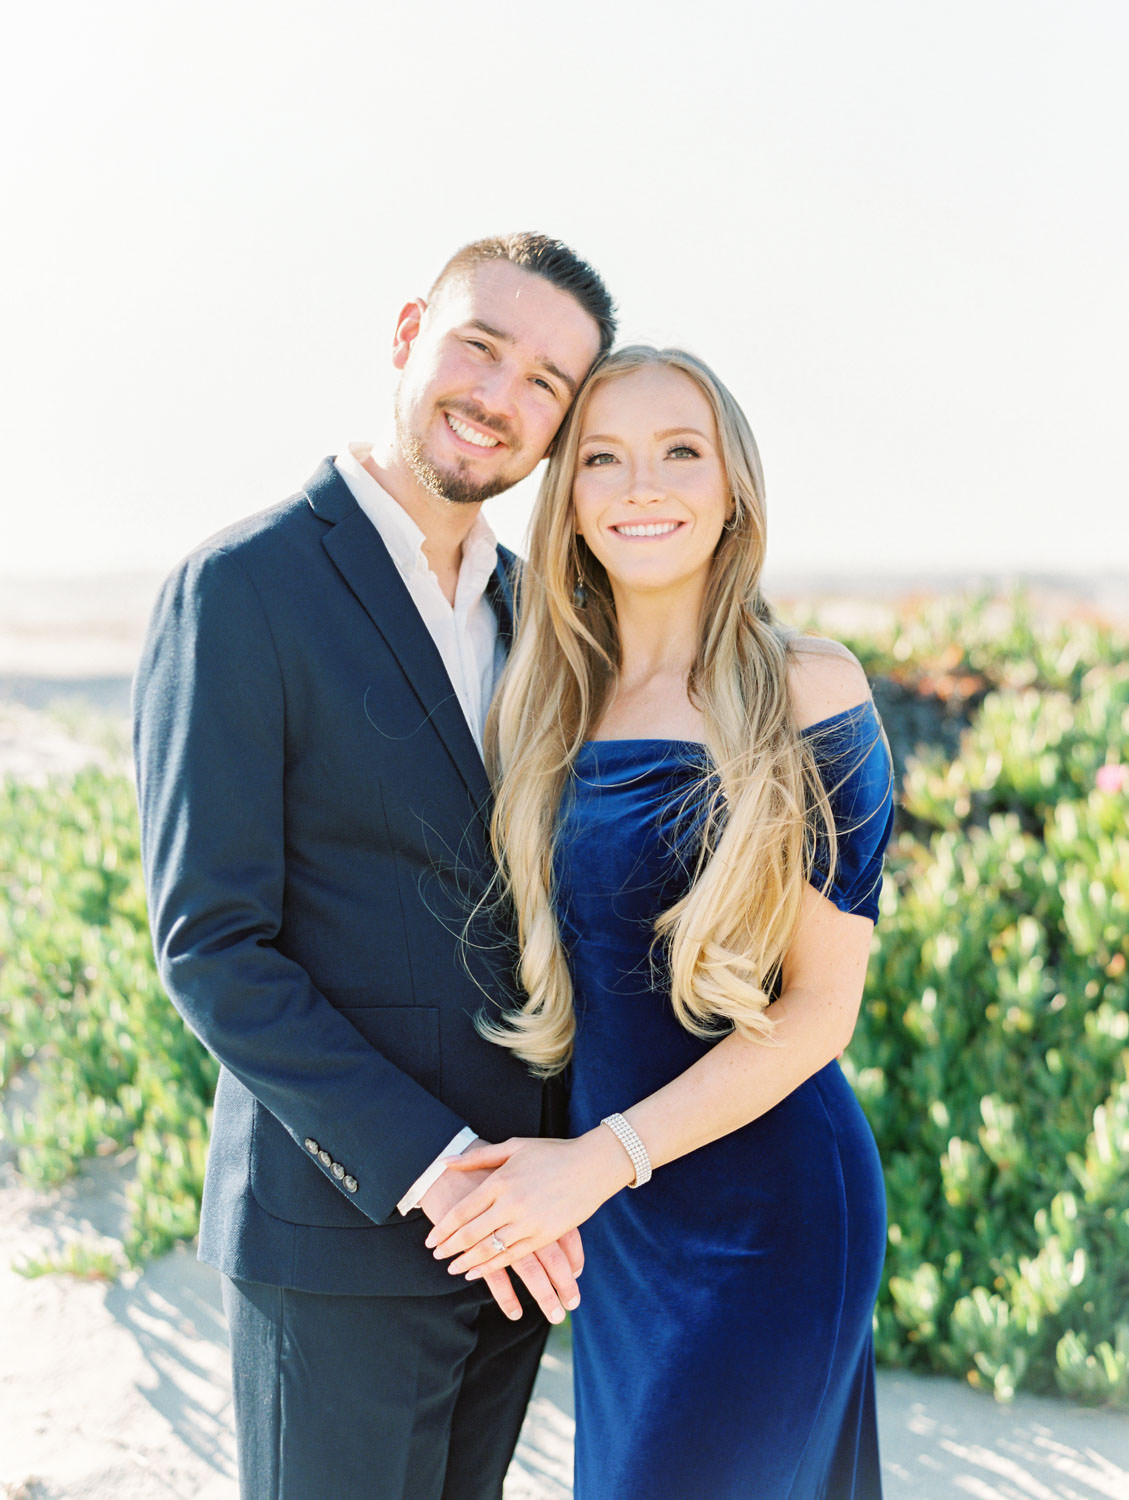 Bride in navy velvet gown and groom in suit. Elegant Coronado Island Engagement Photos on the Beach on film by Cavin Elizabeth Photography.